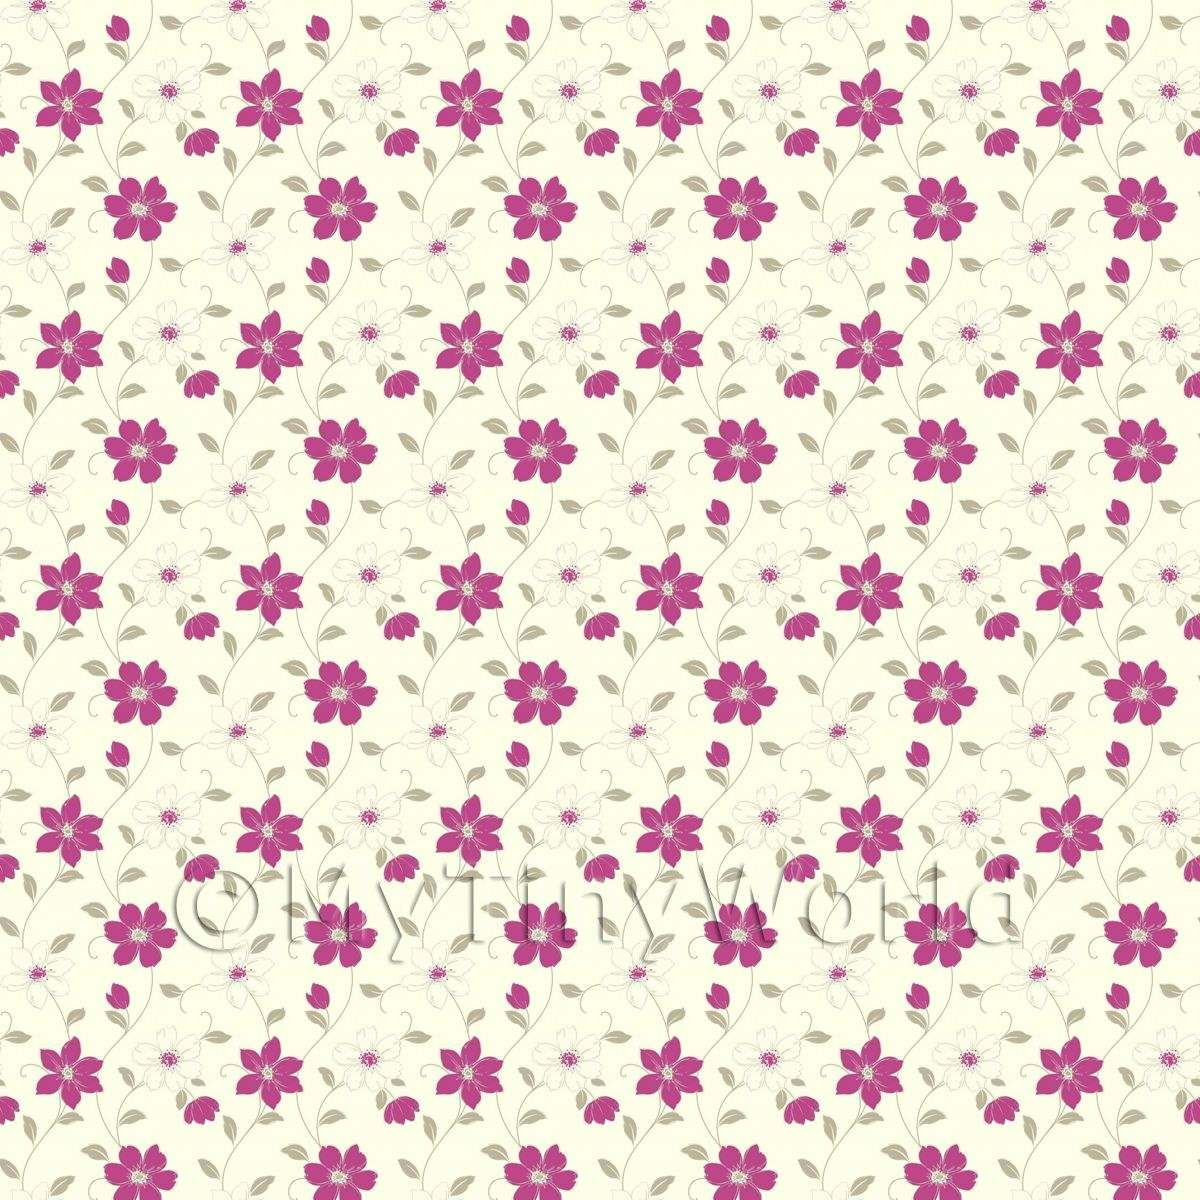 Dolls House Miniature 6 Petal Purple Flower Wallpaper